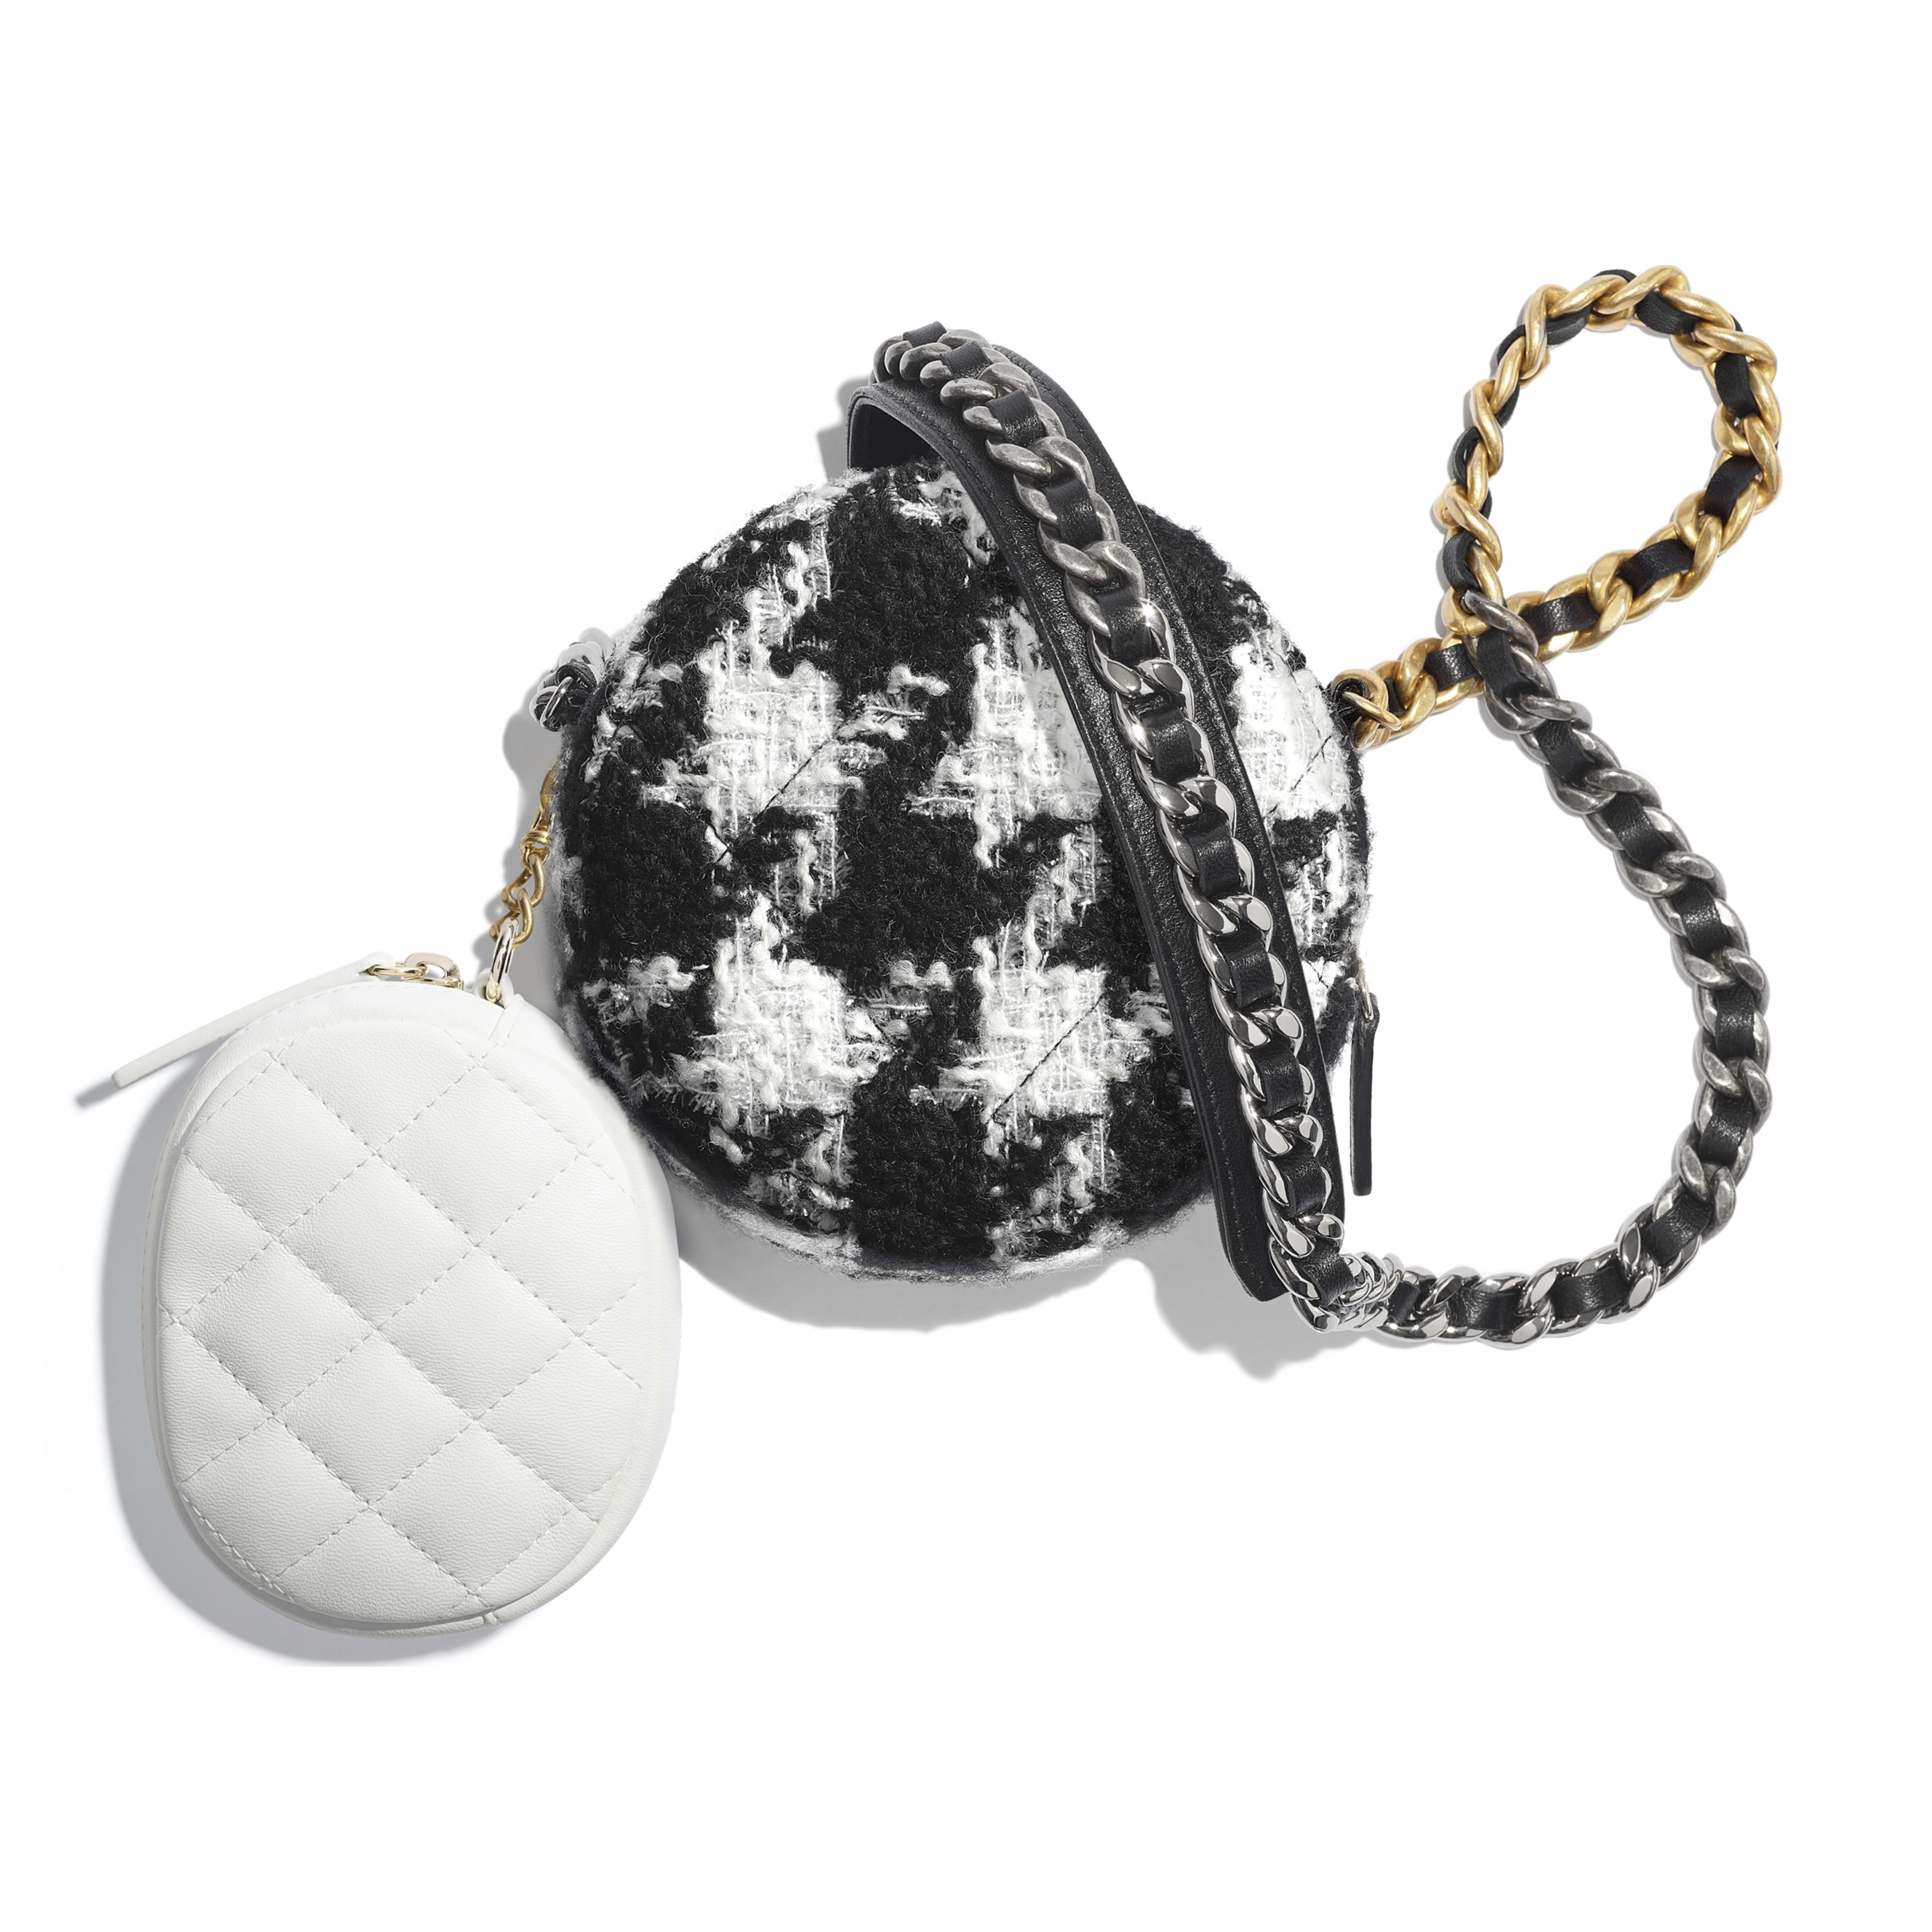 CHANEL 19 Clutch with Chain & Coin Purse - Black & White - Wool Tweed, Lambskin, Gold-Tone, Silver-Tone & Ruthenium-Finish Metal - Alternative view - see full sized version